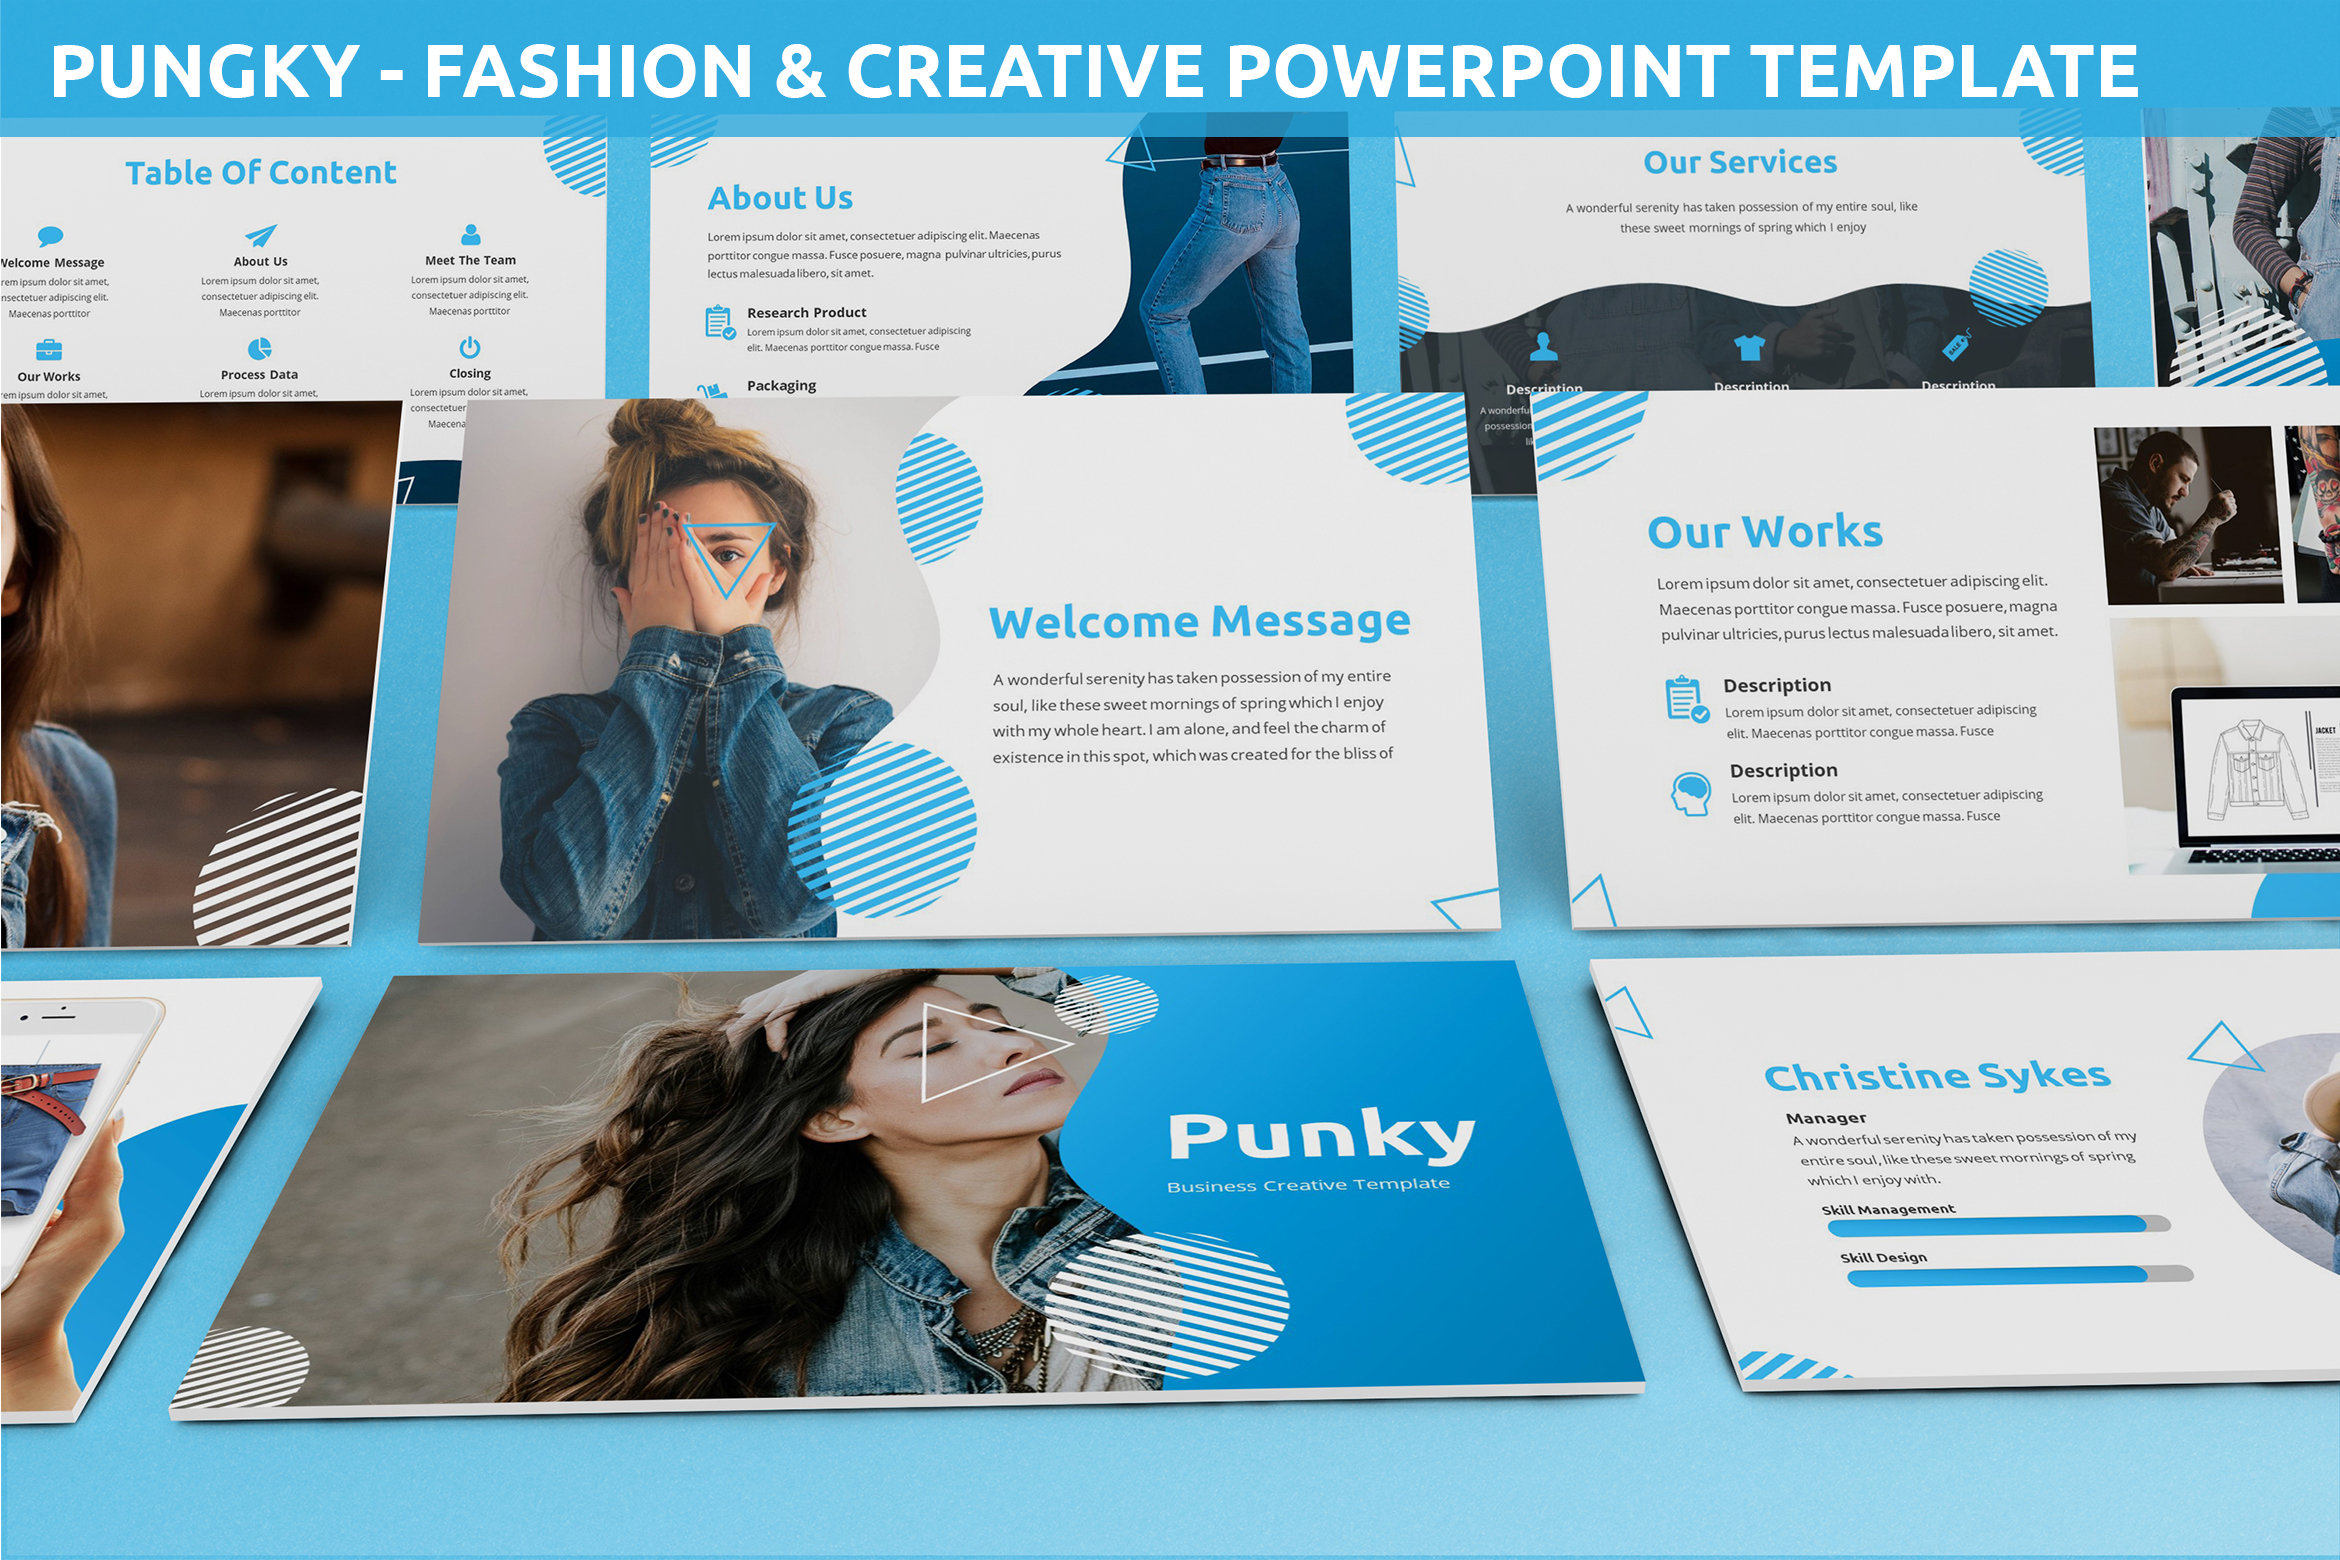 Pungky - Fashion & Creative Powerpoint Template example image 1